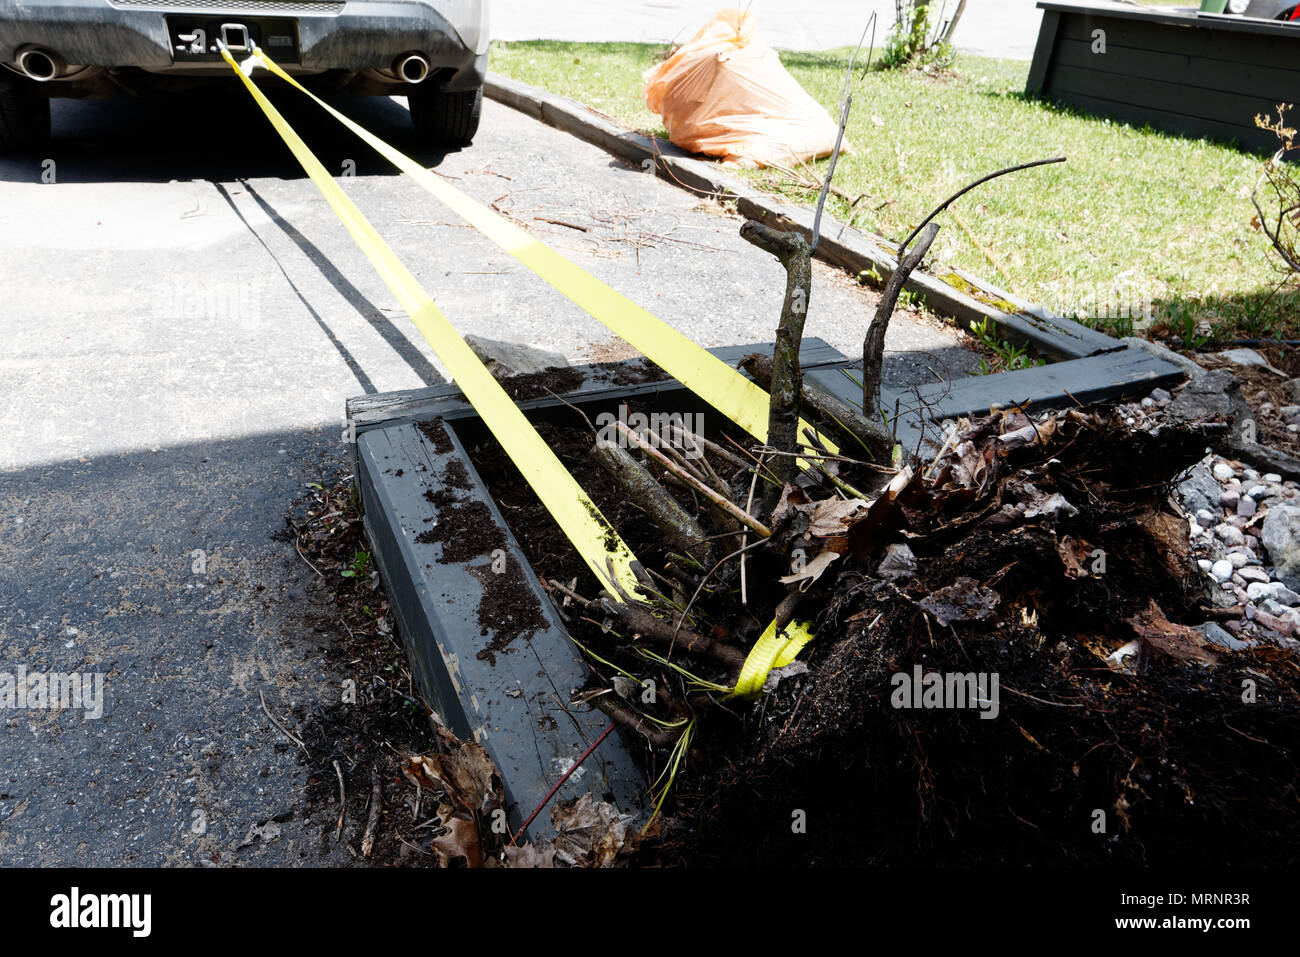 Uprooting a stubborn bush by pulling it with a car - Stock Image